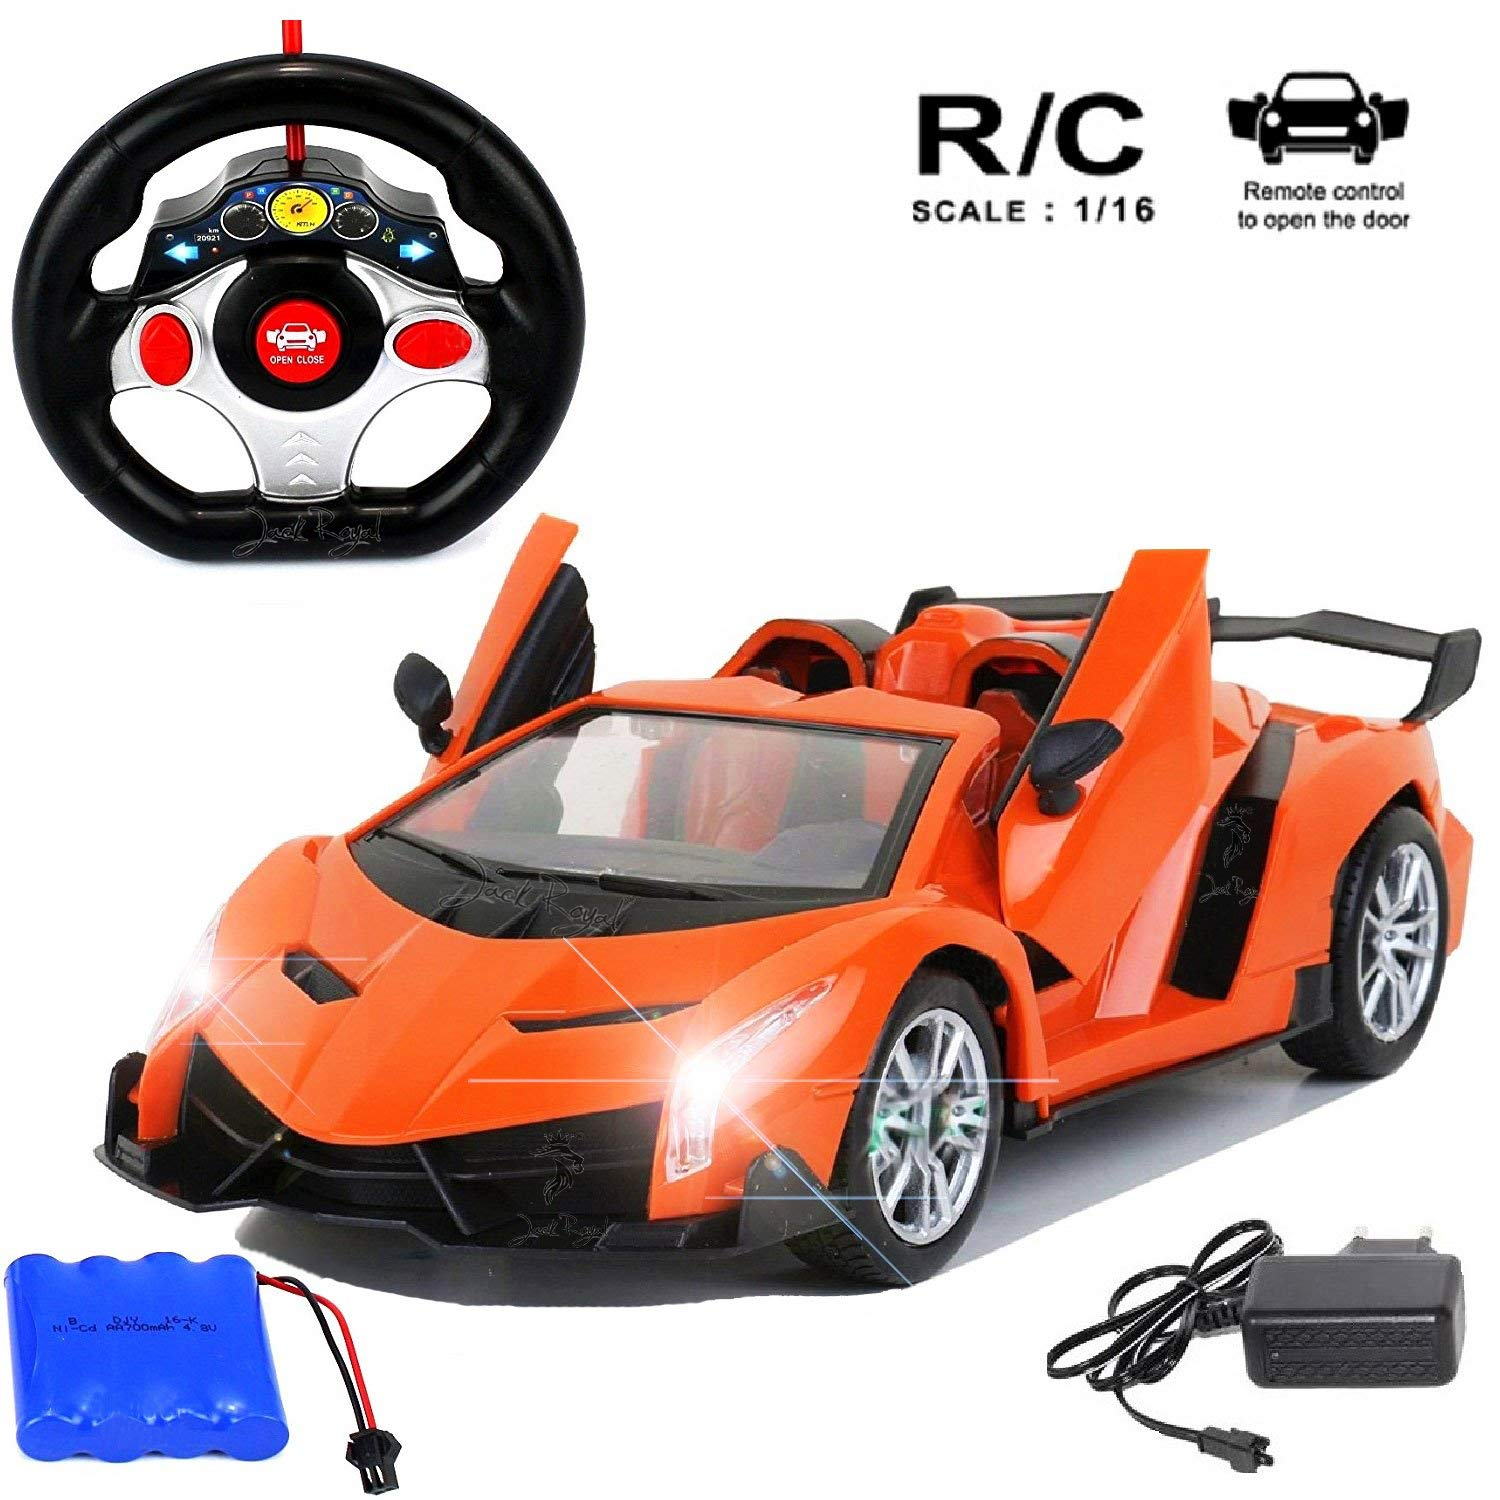 Jack Royal 1:16 Scale Remote Control Winner 3 Racing Opening & Closing Doors -Color May Vary